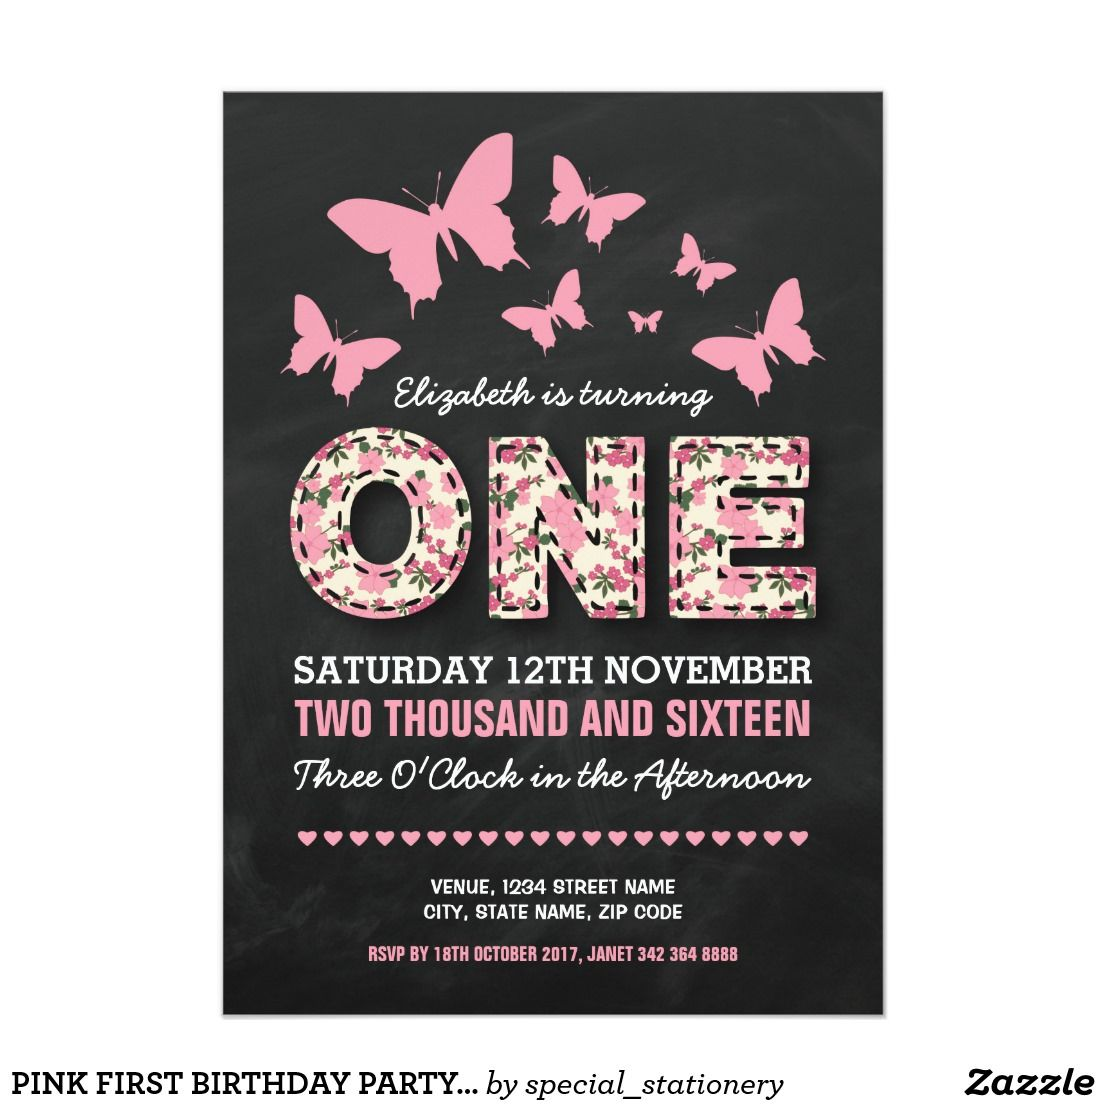 Pink first birthday party | floral butterflies invitation